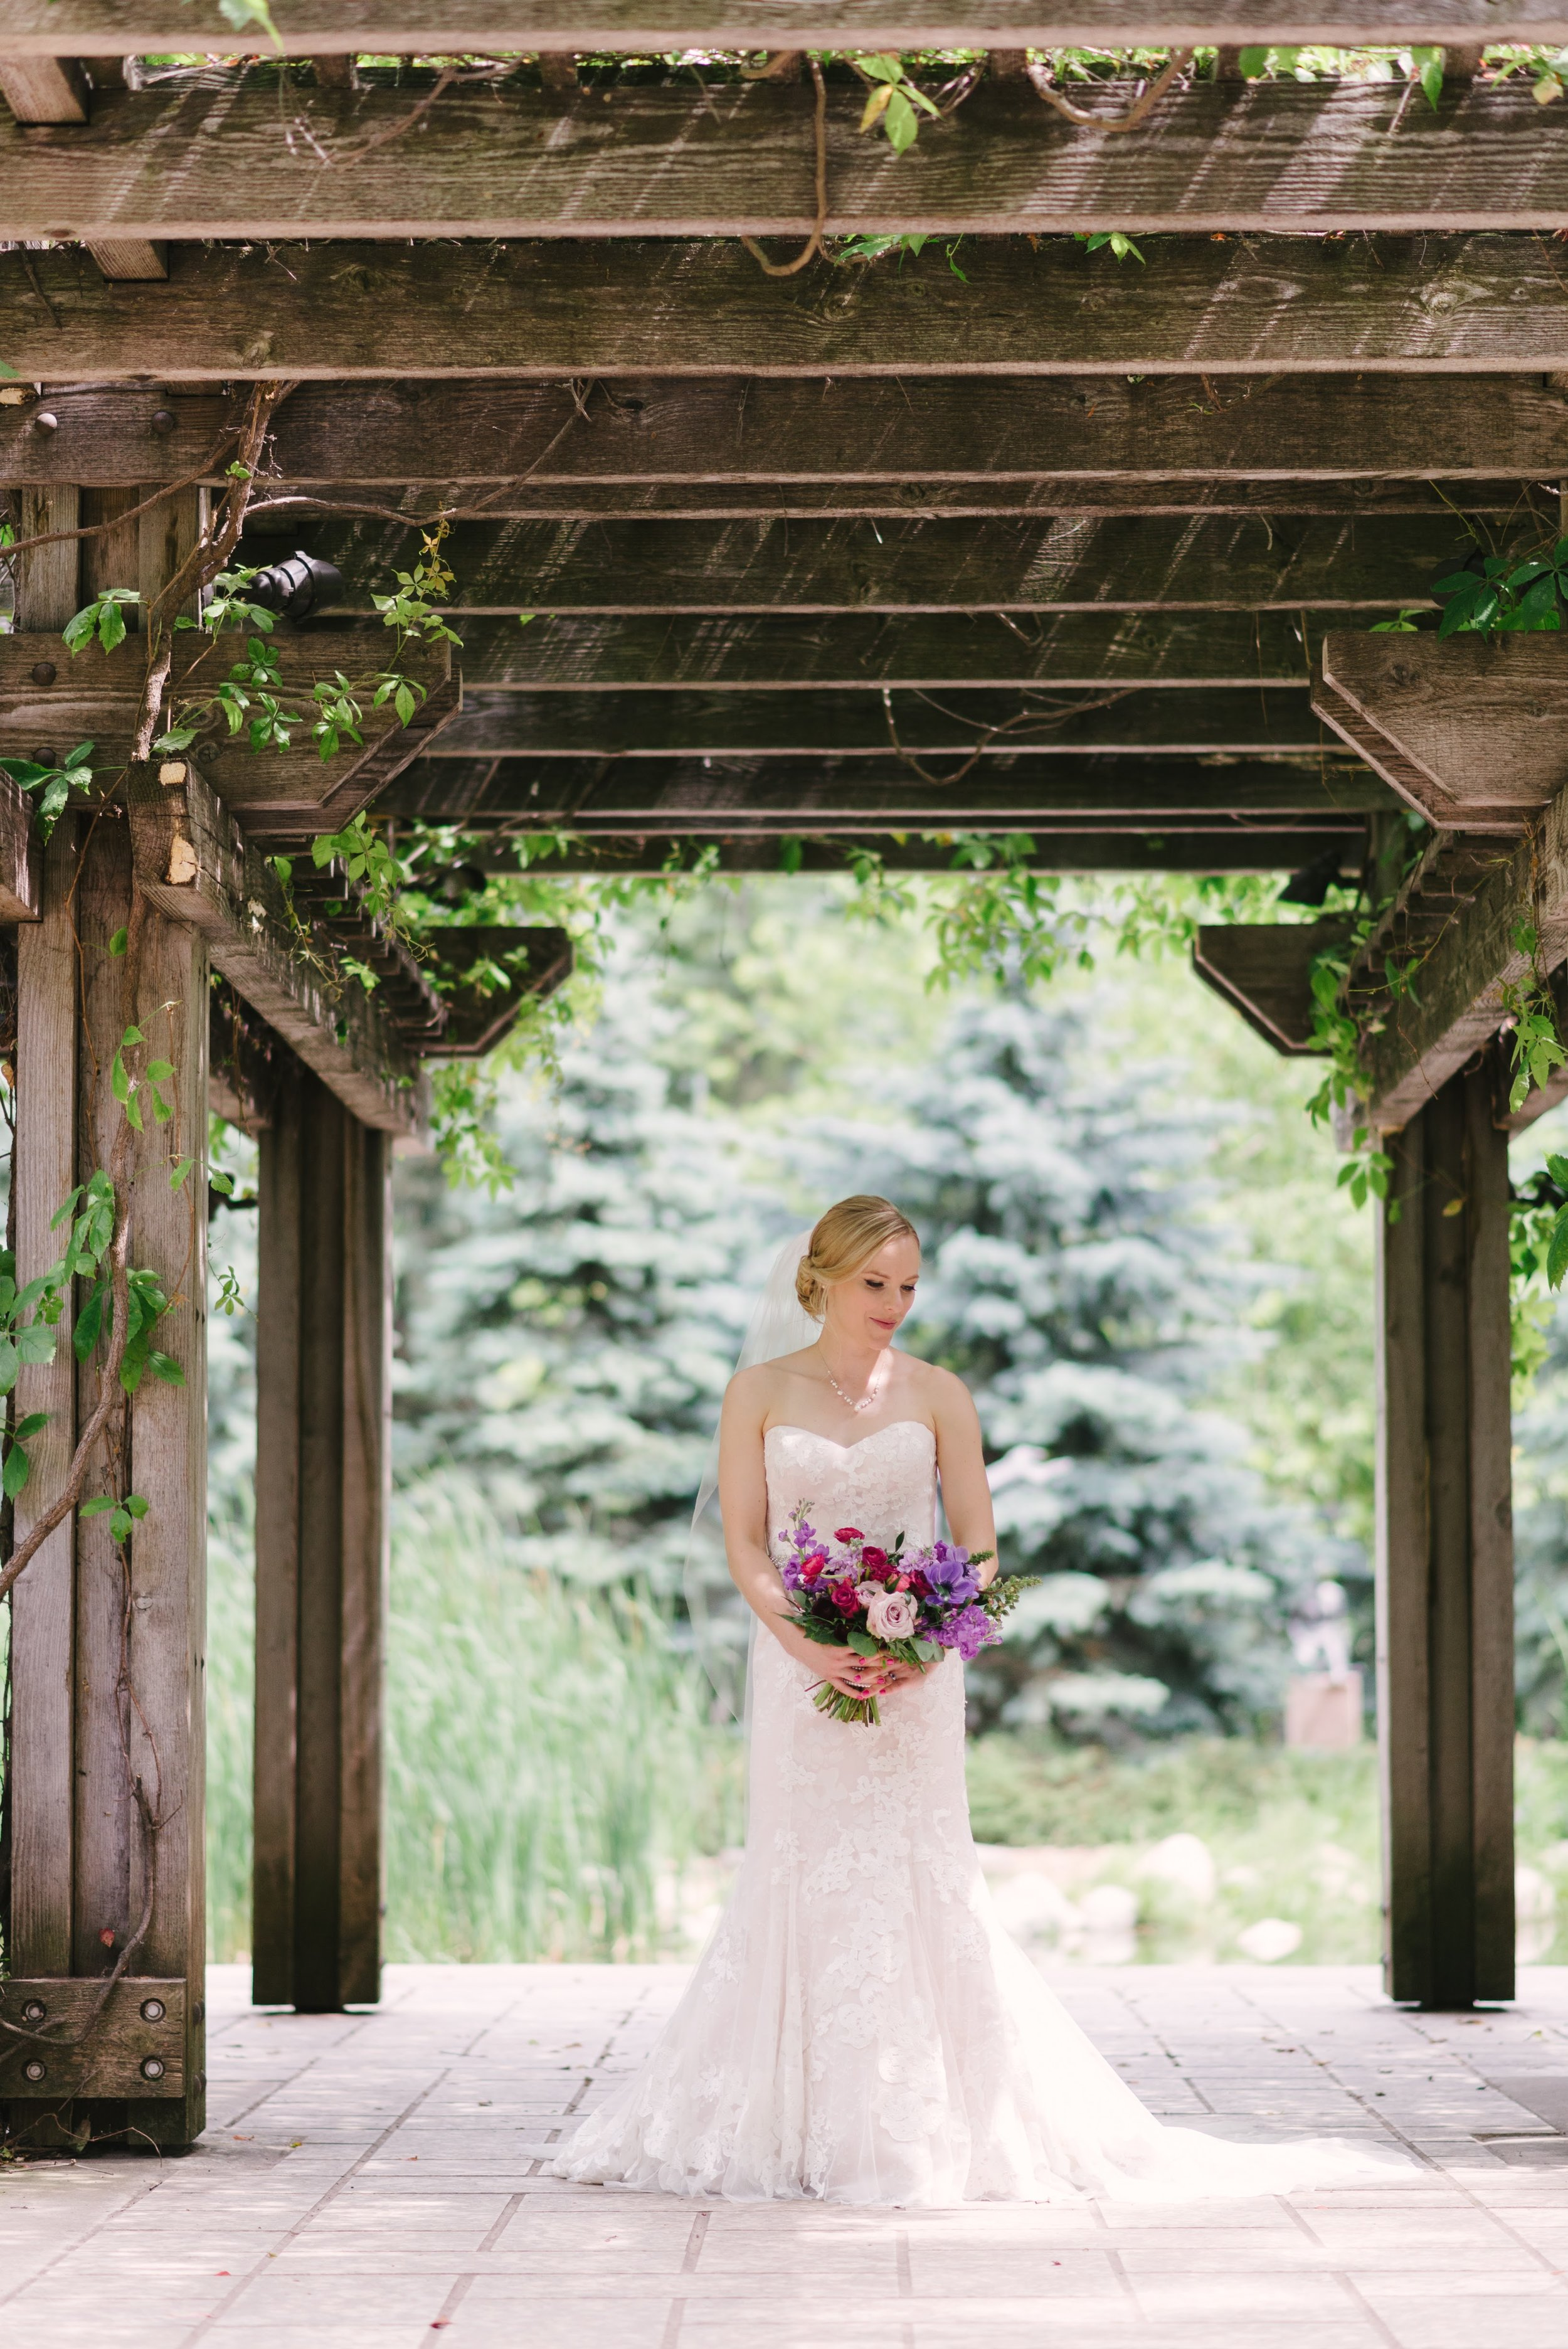 Berry Wedding Colors - Stone House Creative